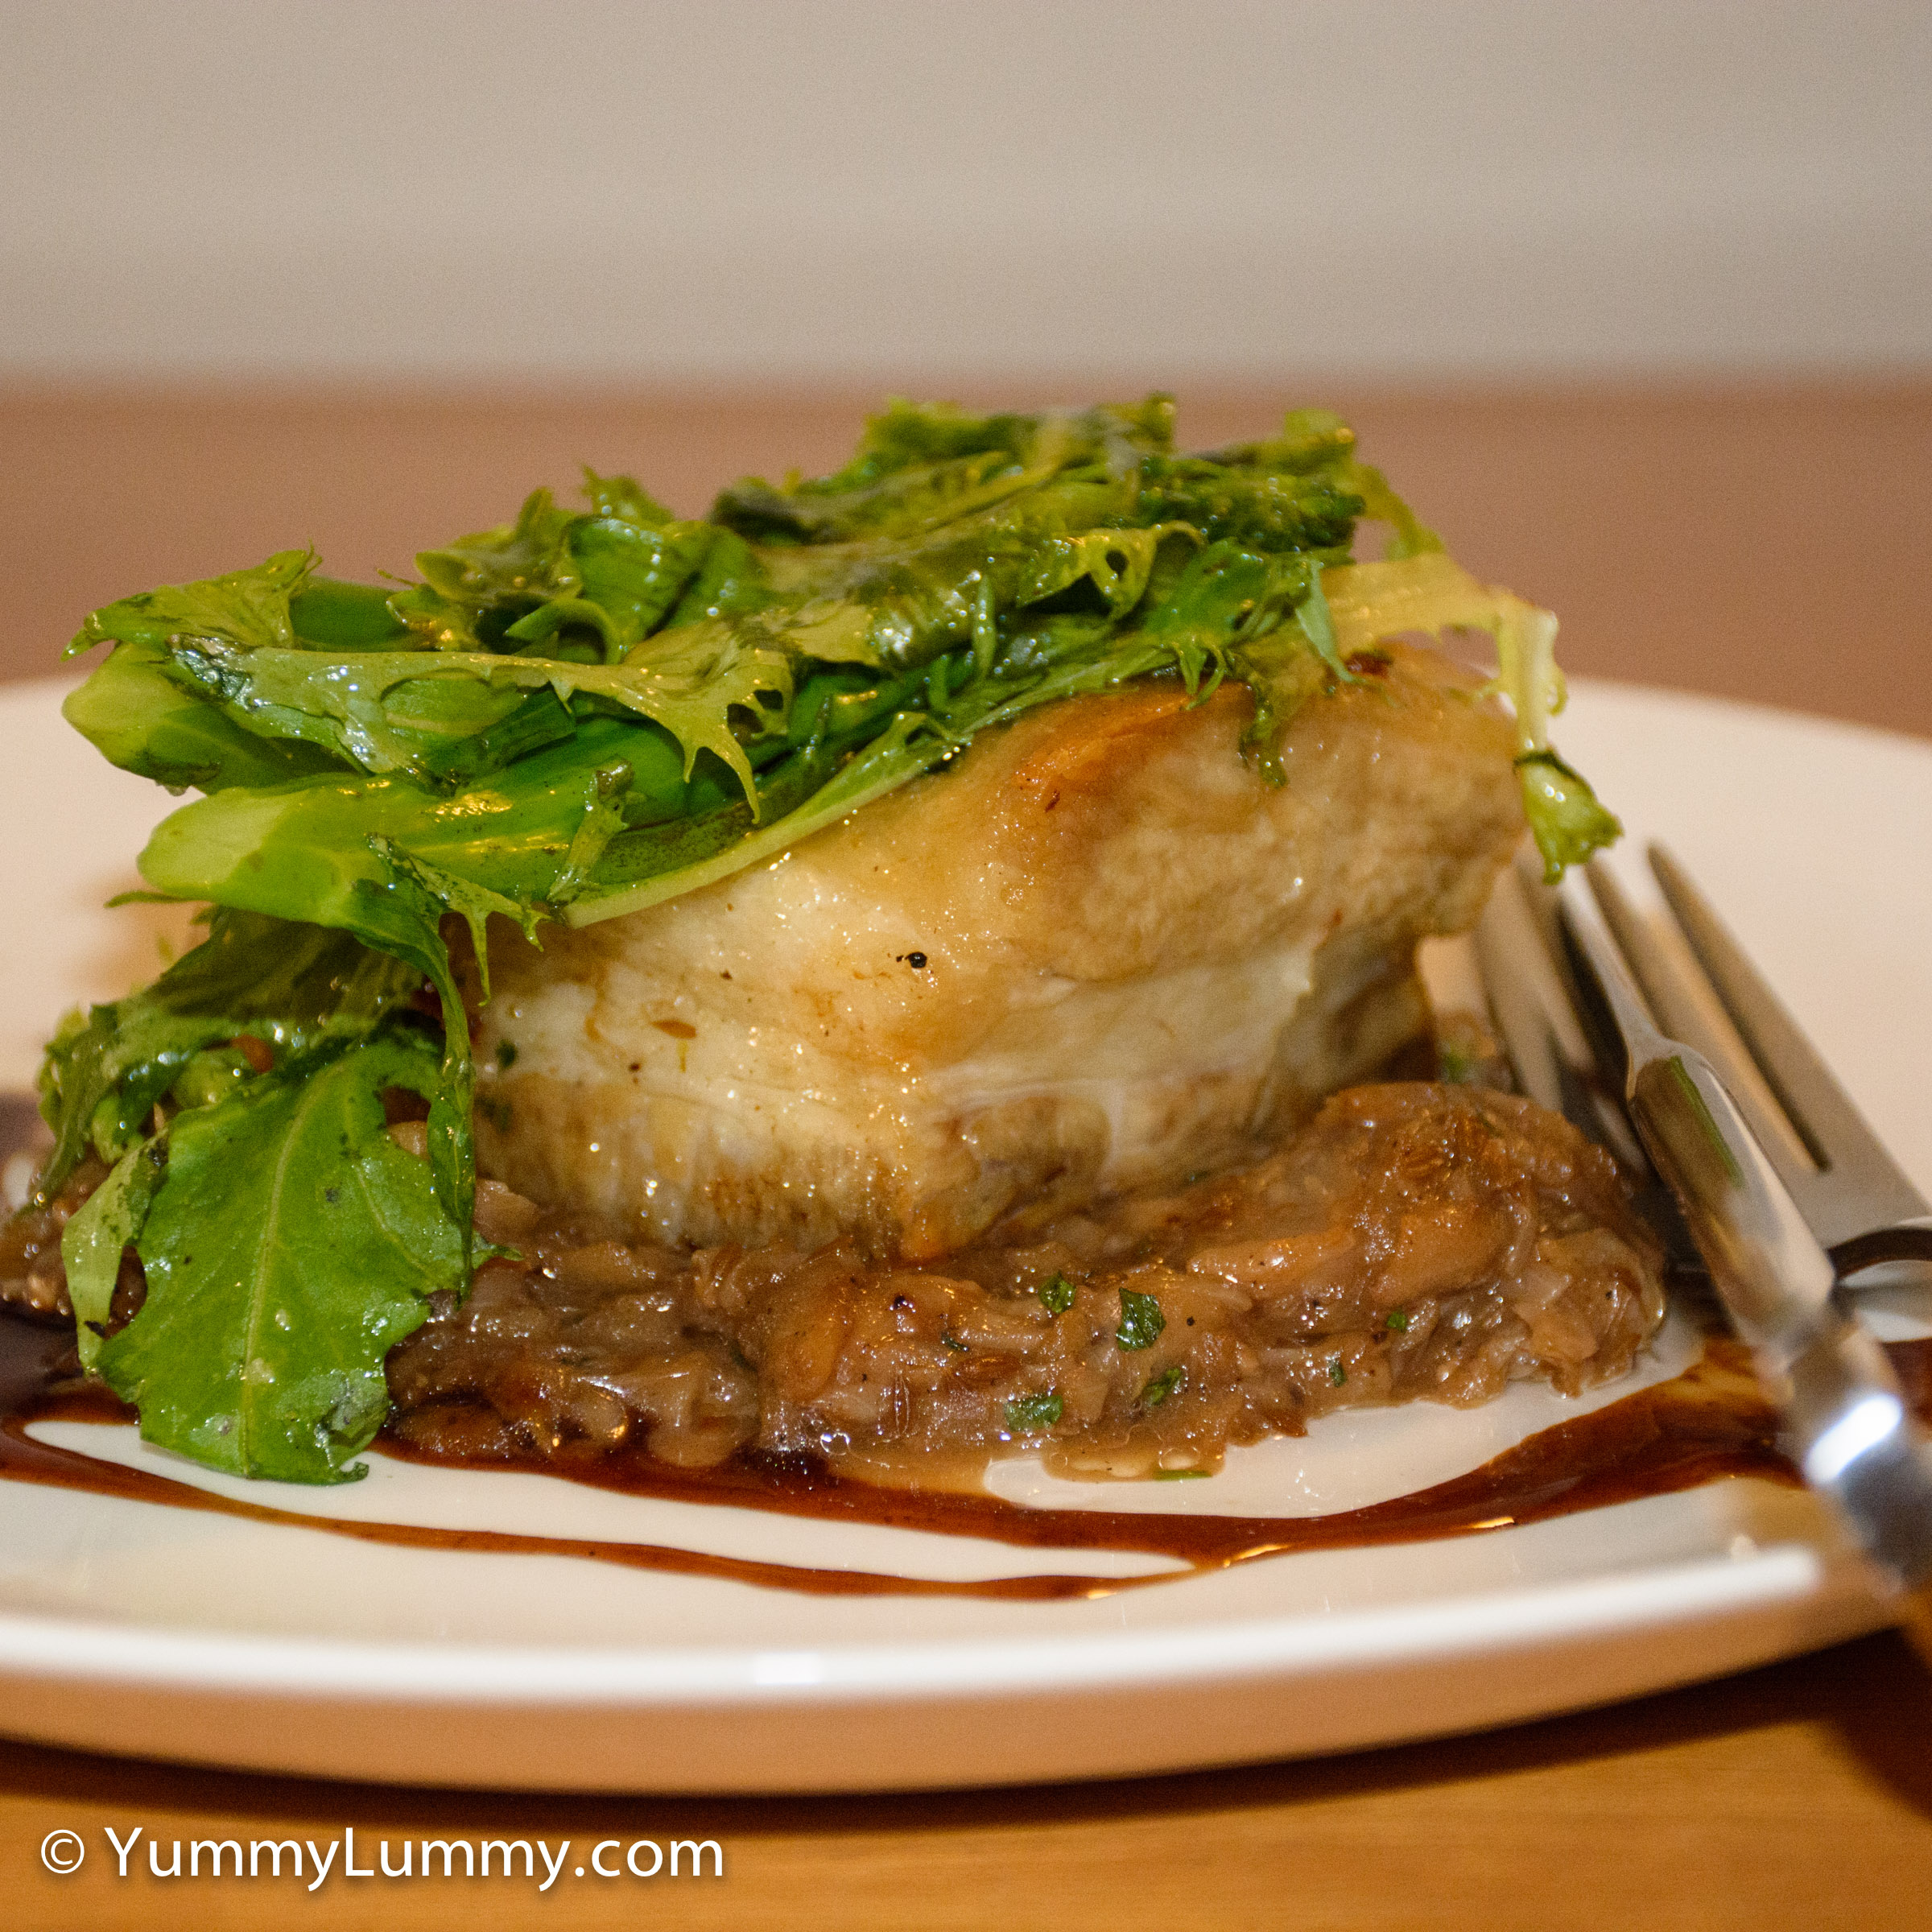 A photograph of my dinner tonight. Pork belly with cabbage and apple ragout